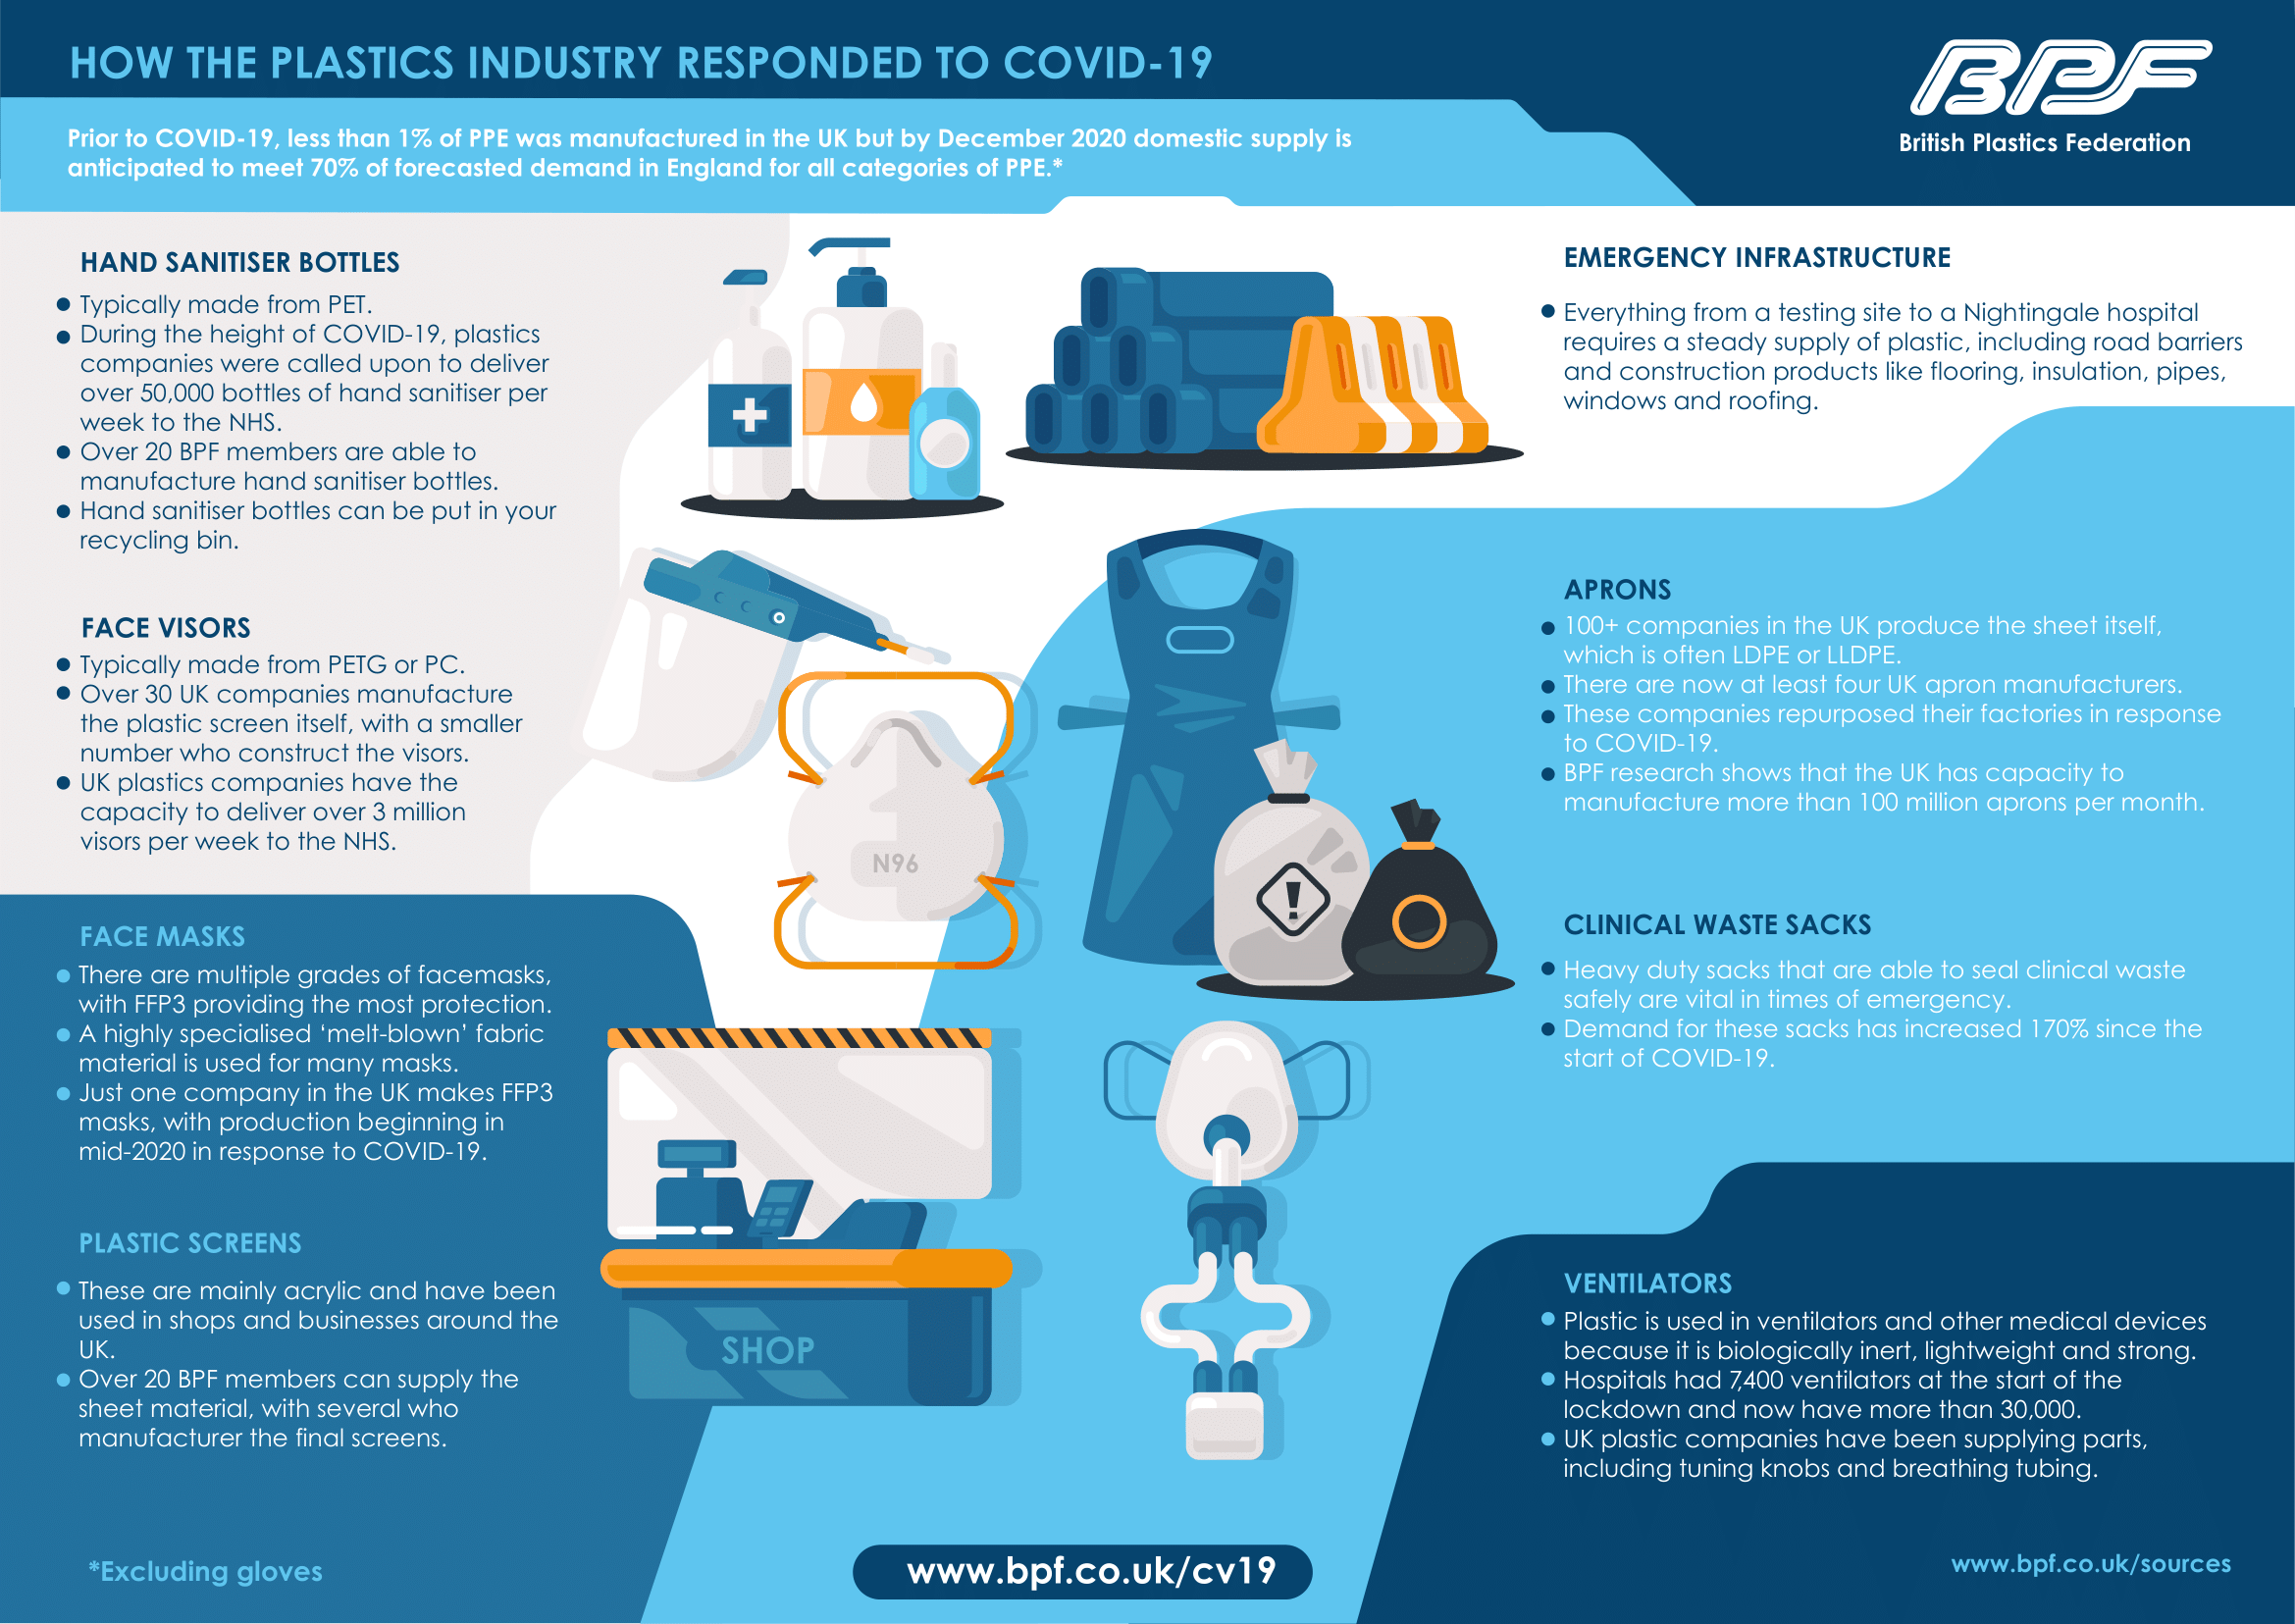 How the Plastics Industry Responded to COVID-19 by BPF